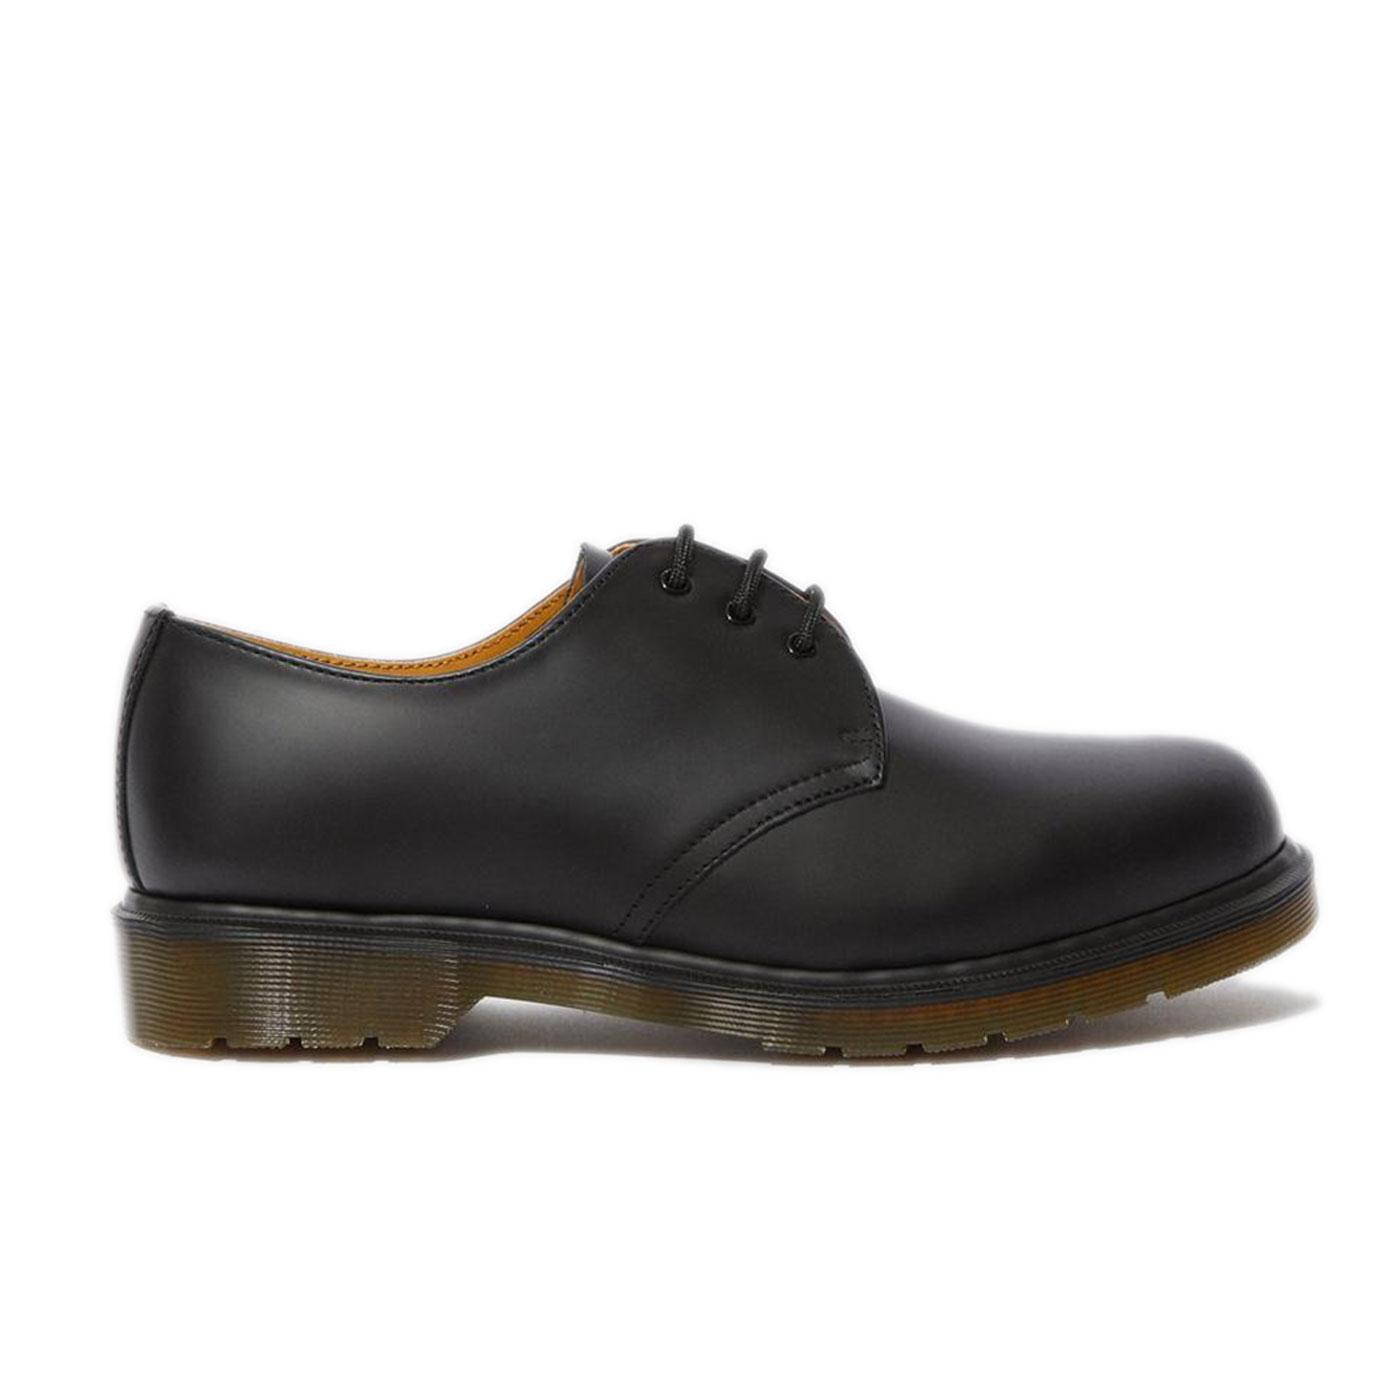 1461 Plain Welt DR MARTENS Smooth Leather Shoes